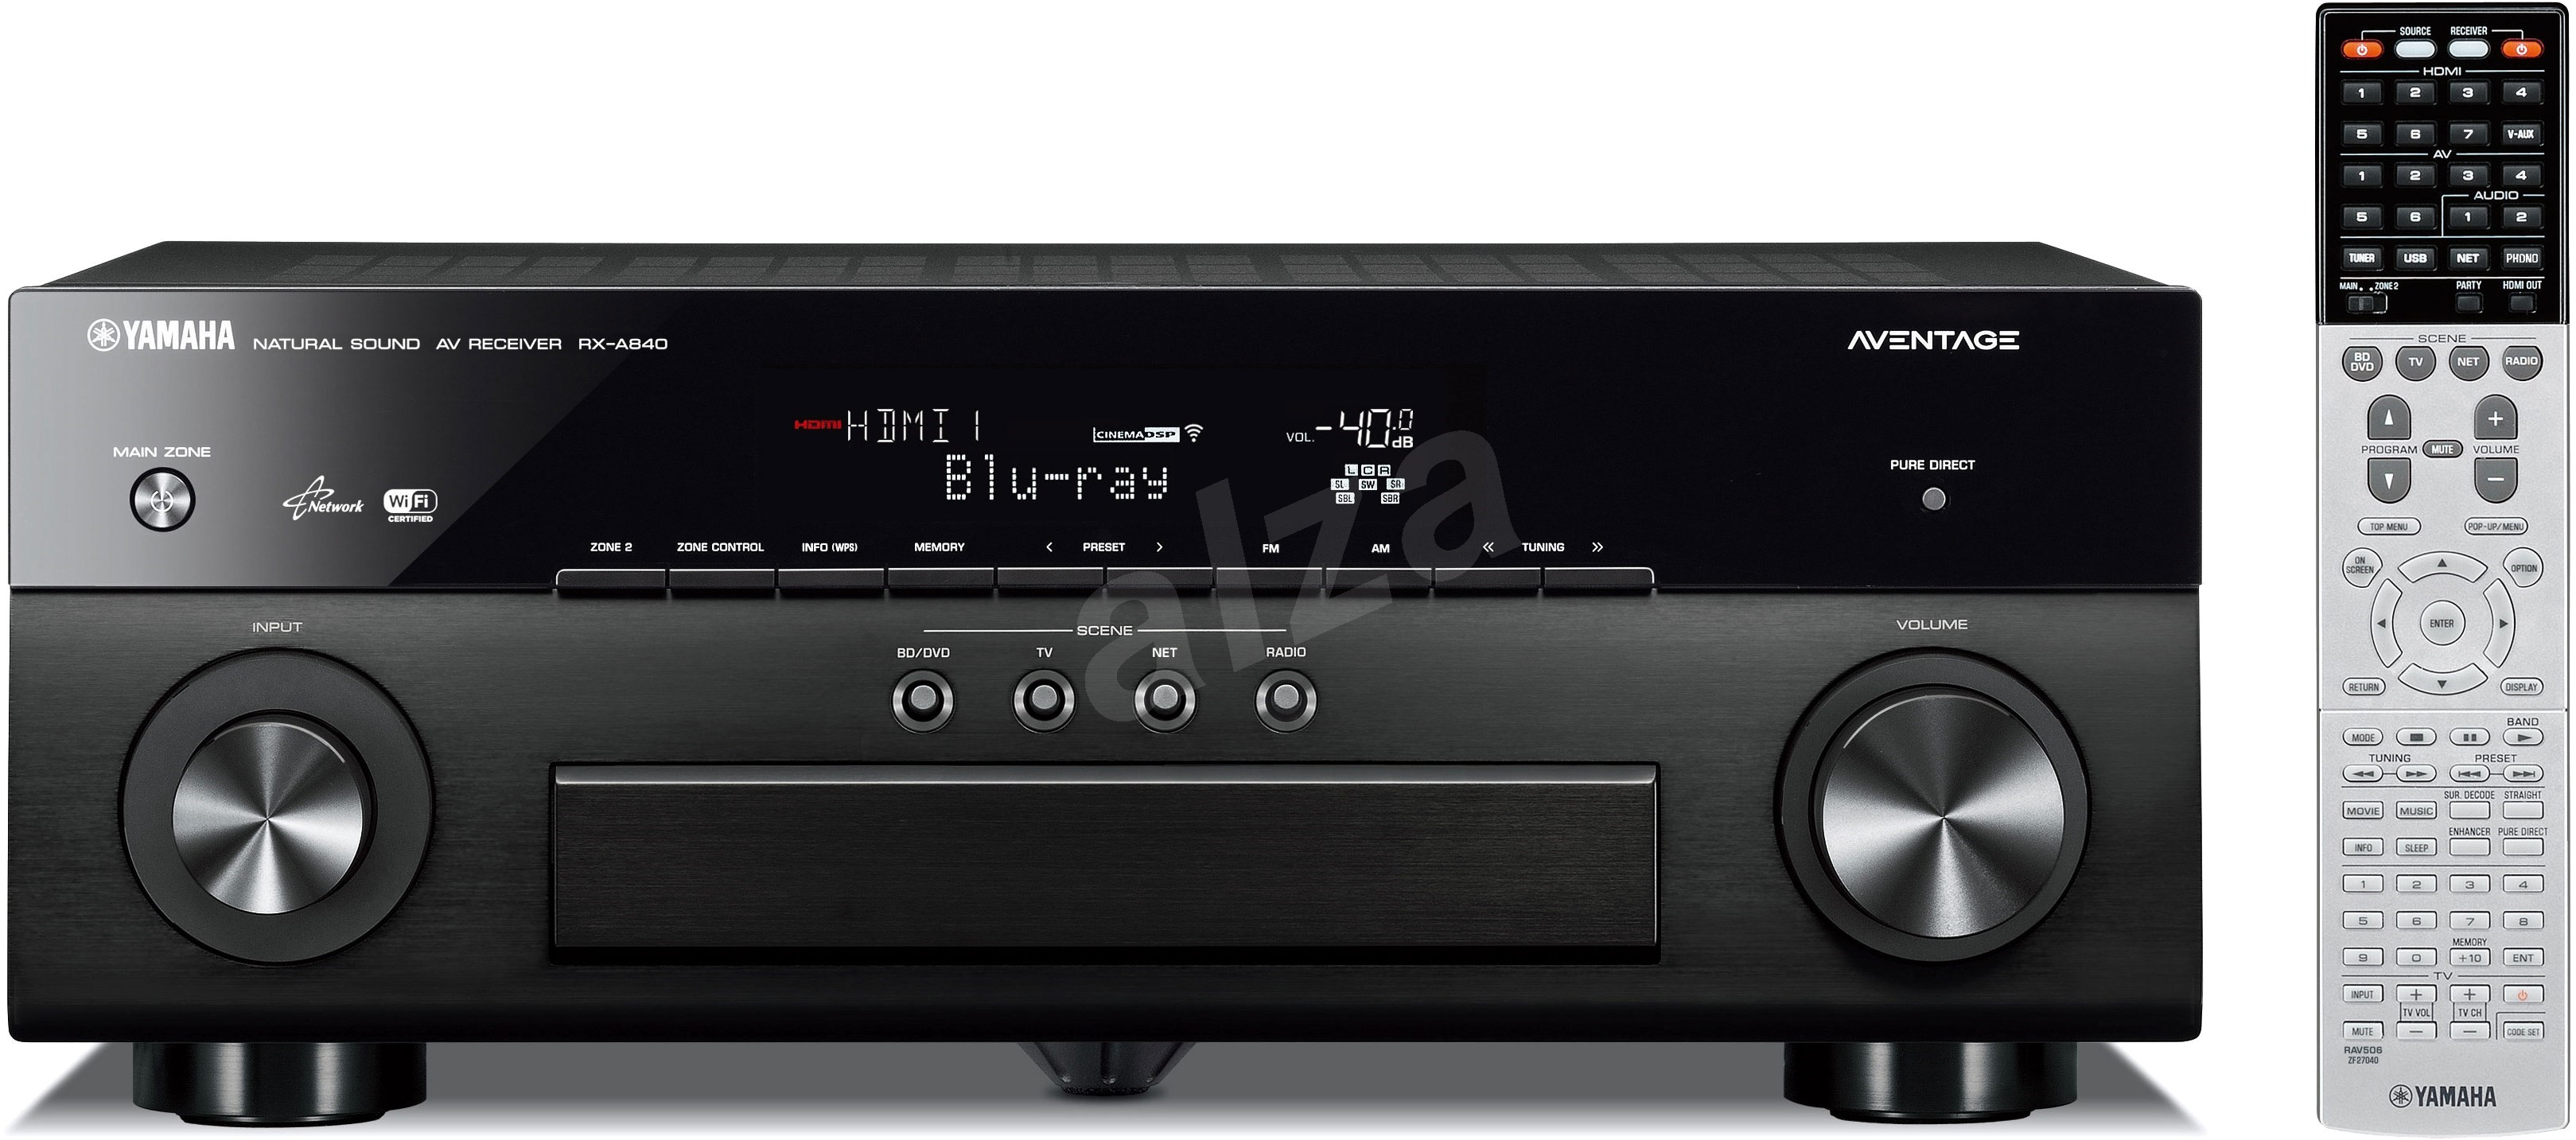 Yamaha rx a840 black av receiver for Yamaha amplifier spotify